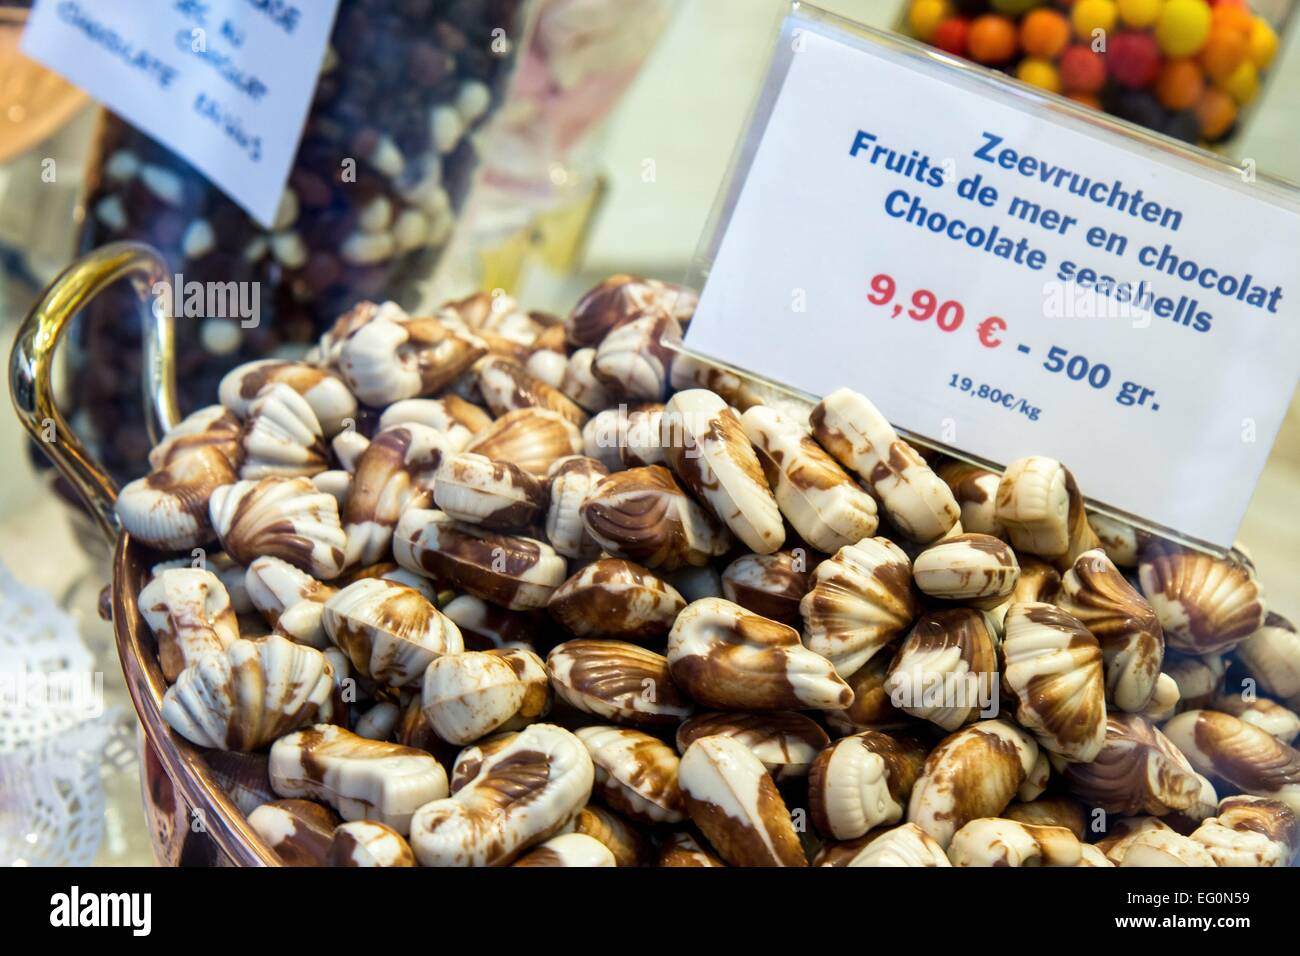 Belgium: Belgian chocolate (Fruits de mer) in confectionery shop ...